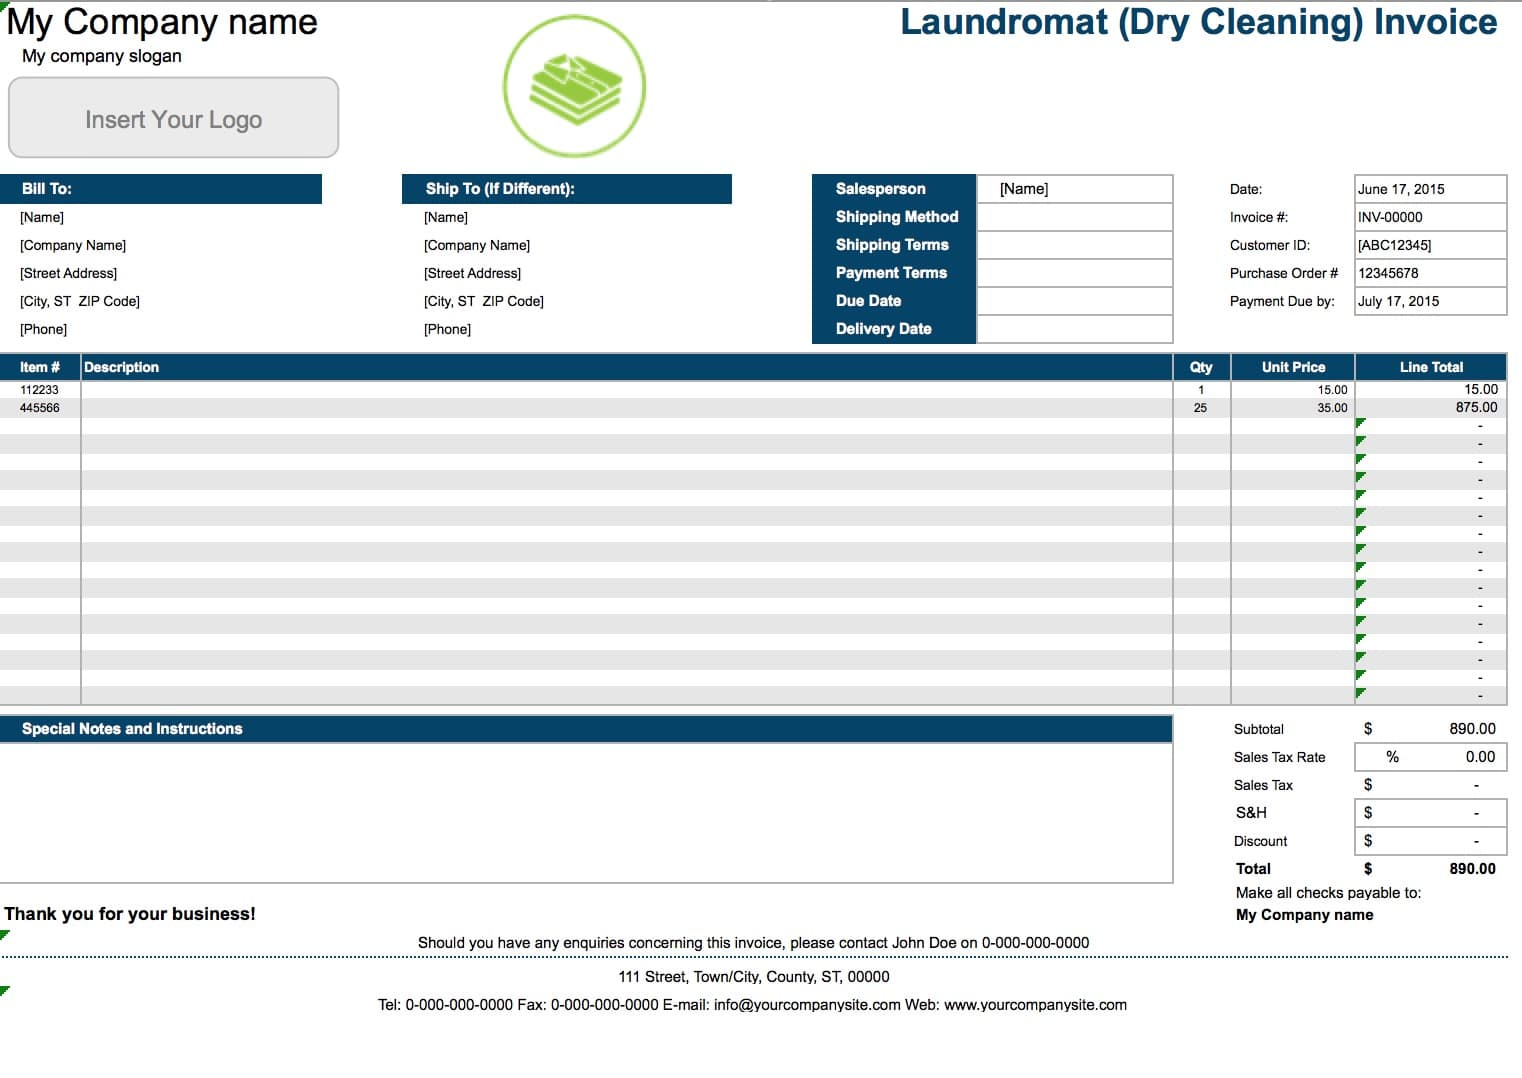 Free Laundromat Dry Cleaning Invoice Template Excel PDF Word - Free blank invoice template online clothing stores for women